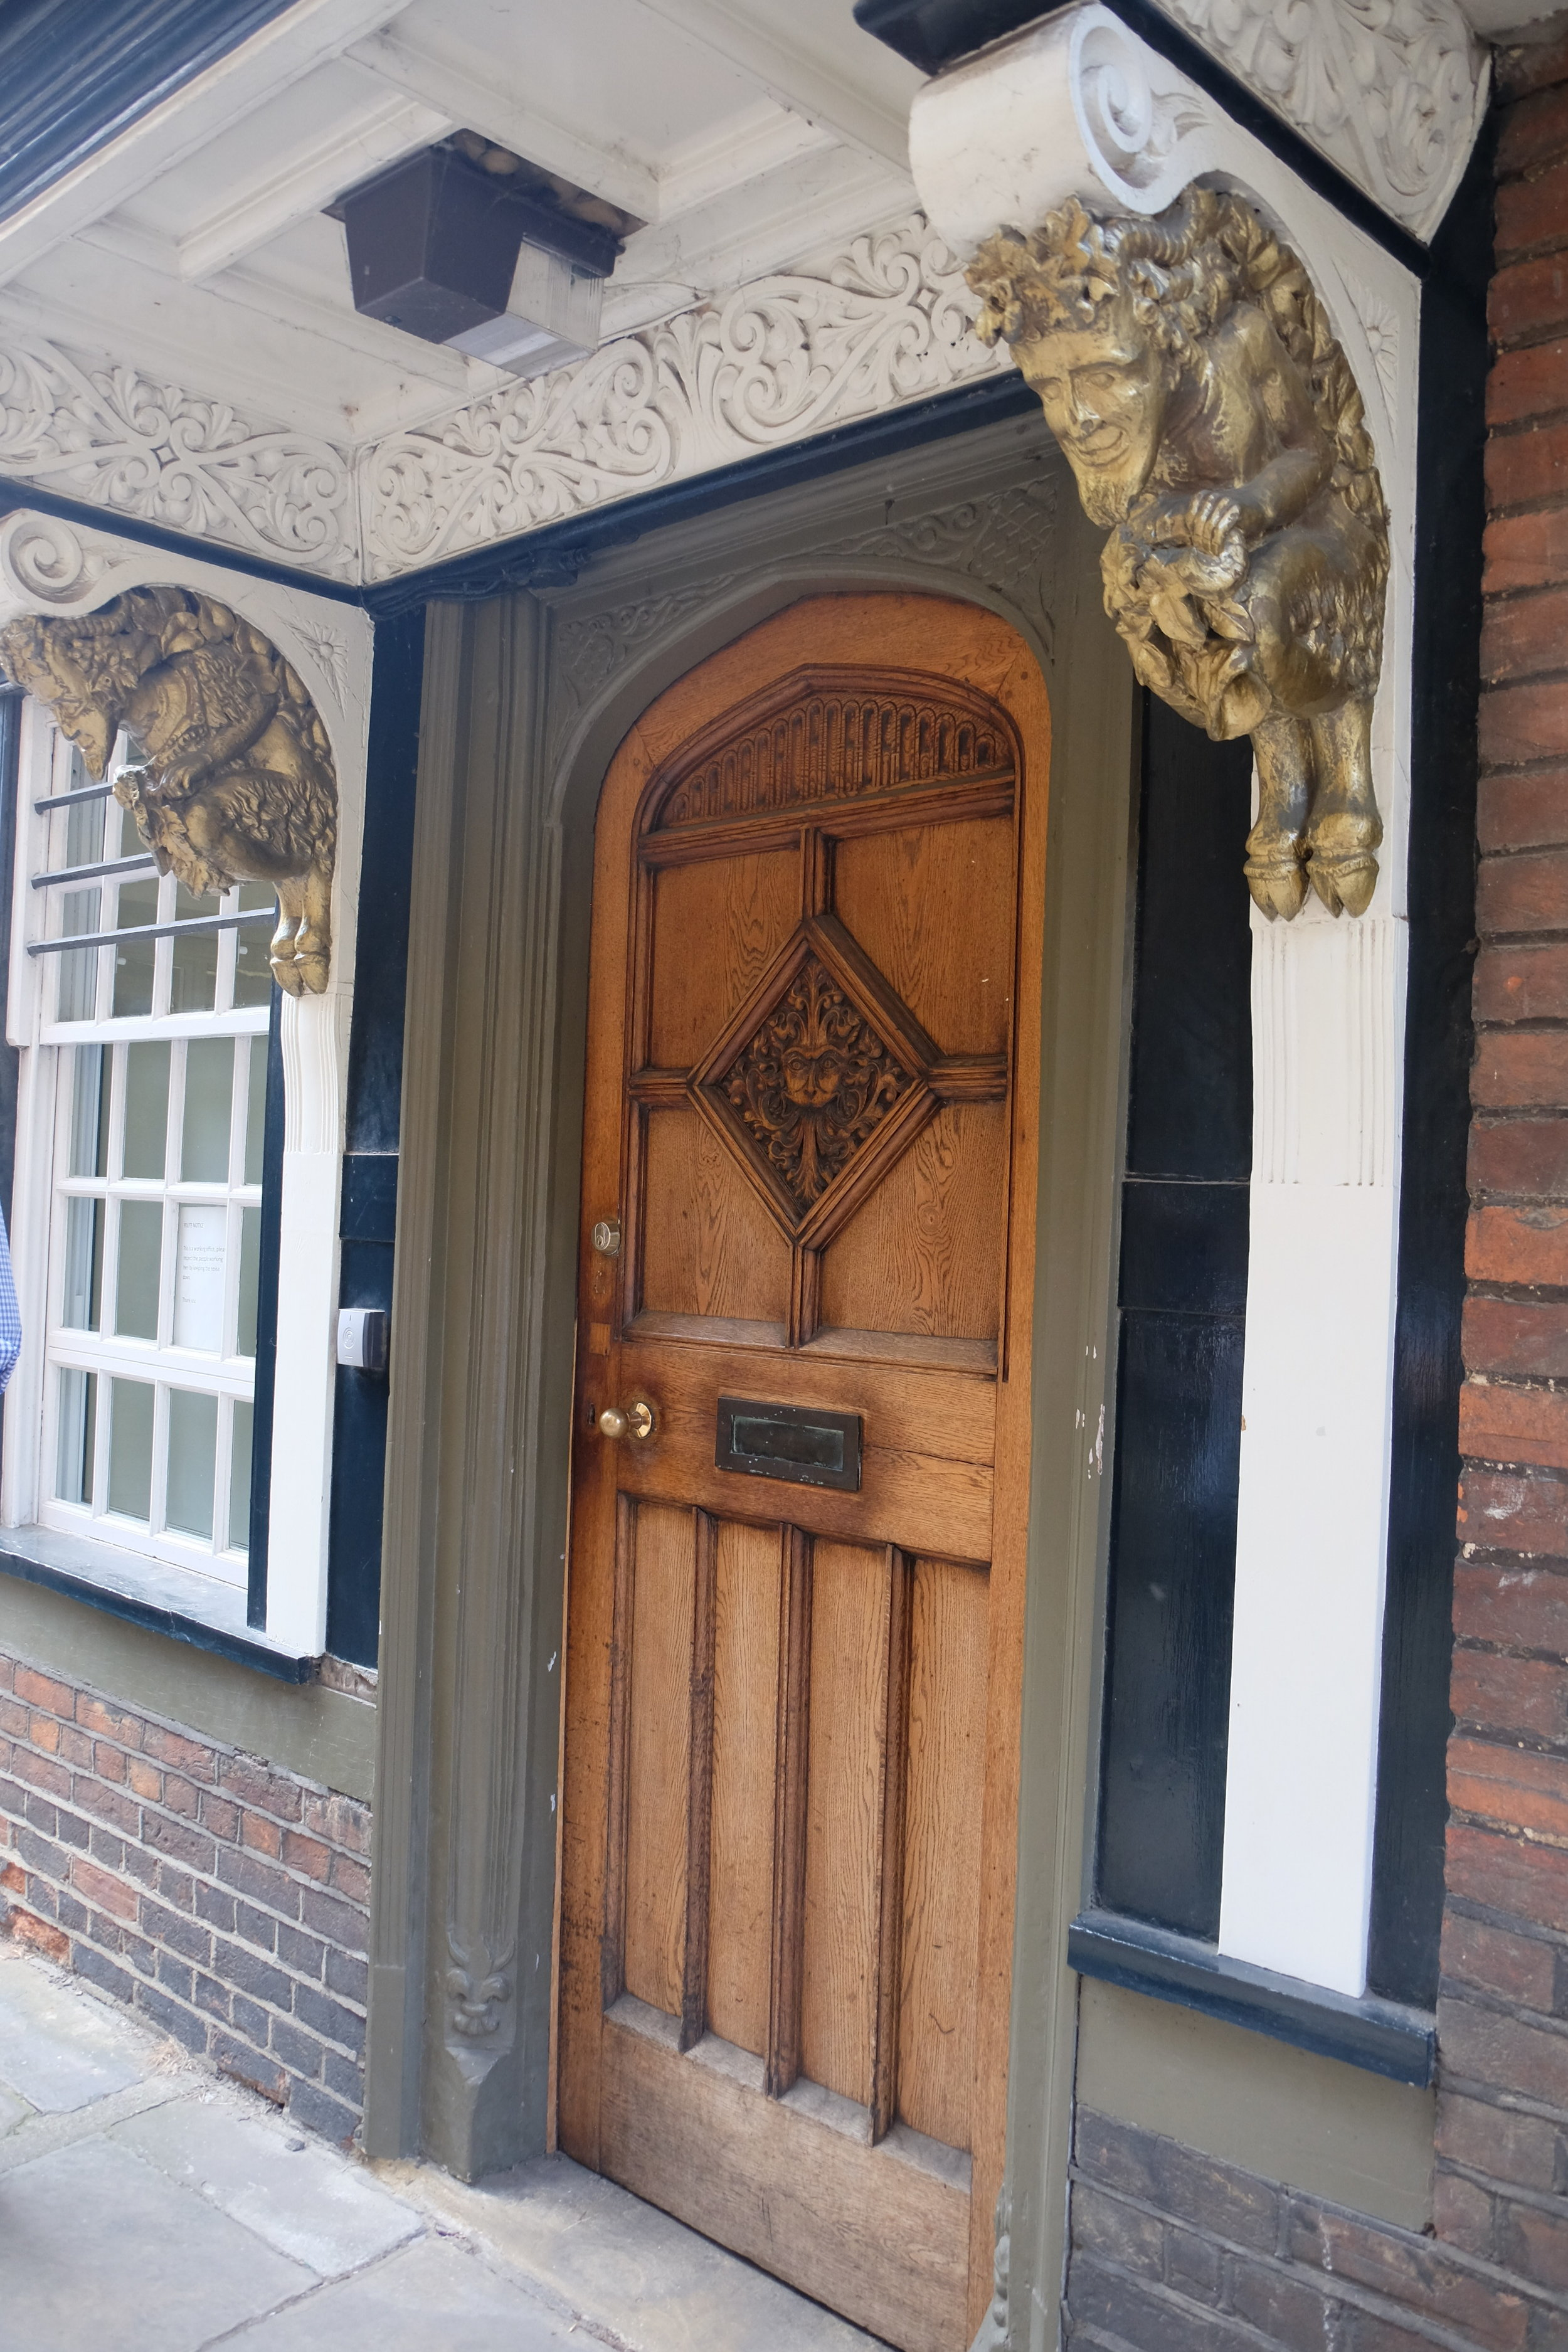 The entrance to Narnia, Oxford, England (C.S. Lewis)